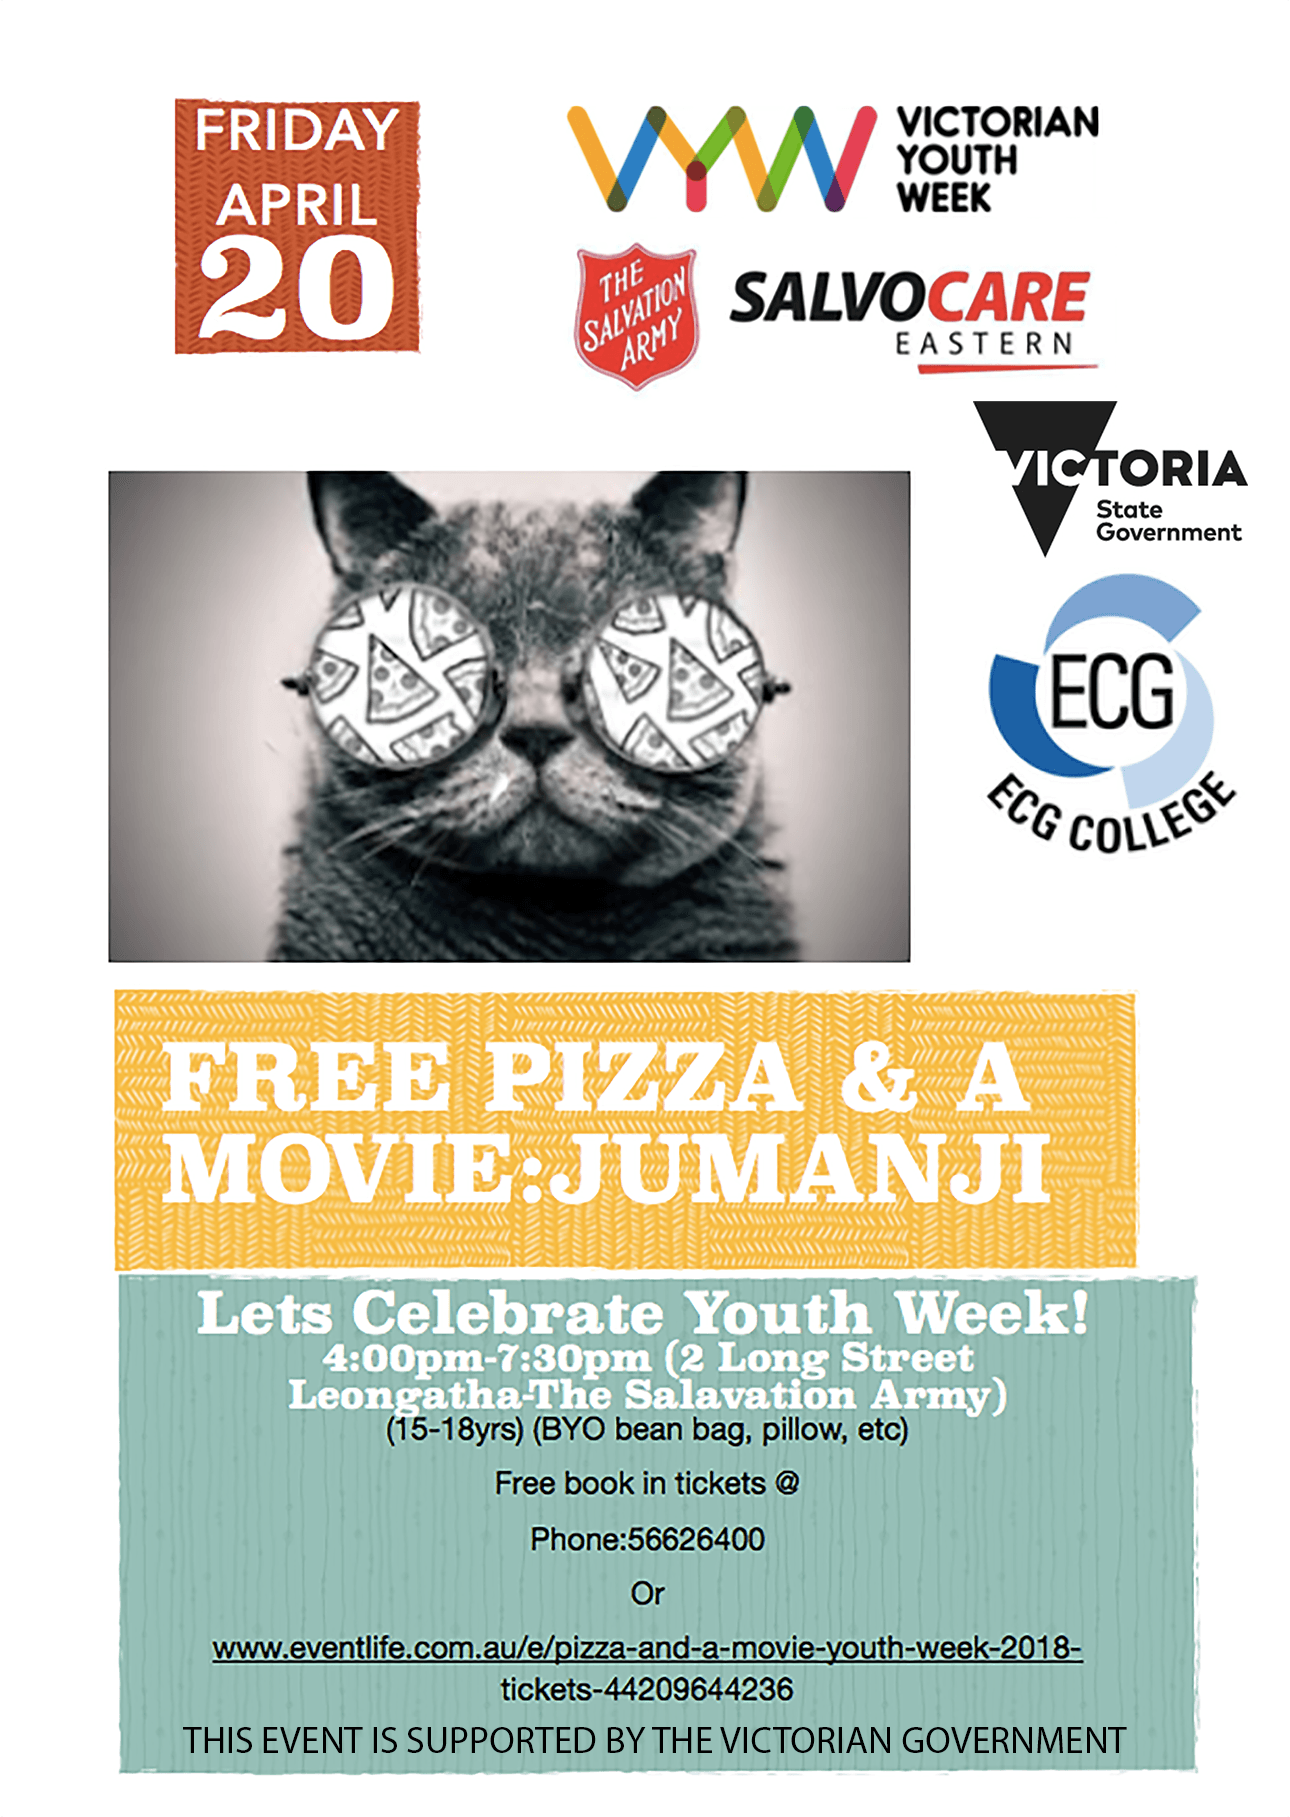 Youth Week Poster 2018 20 April 2 Long Street Leongatha 4PM